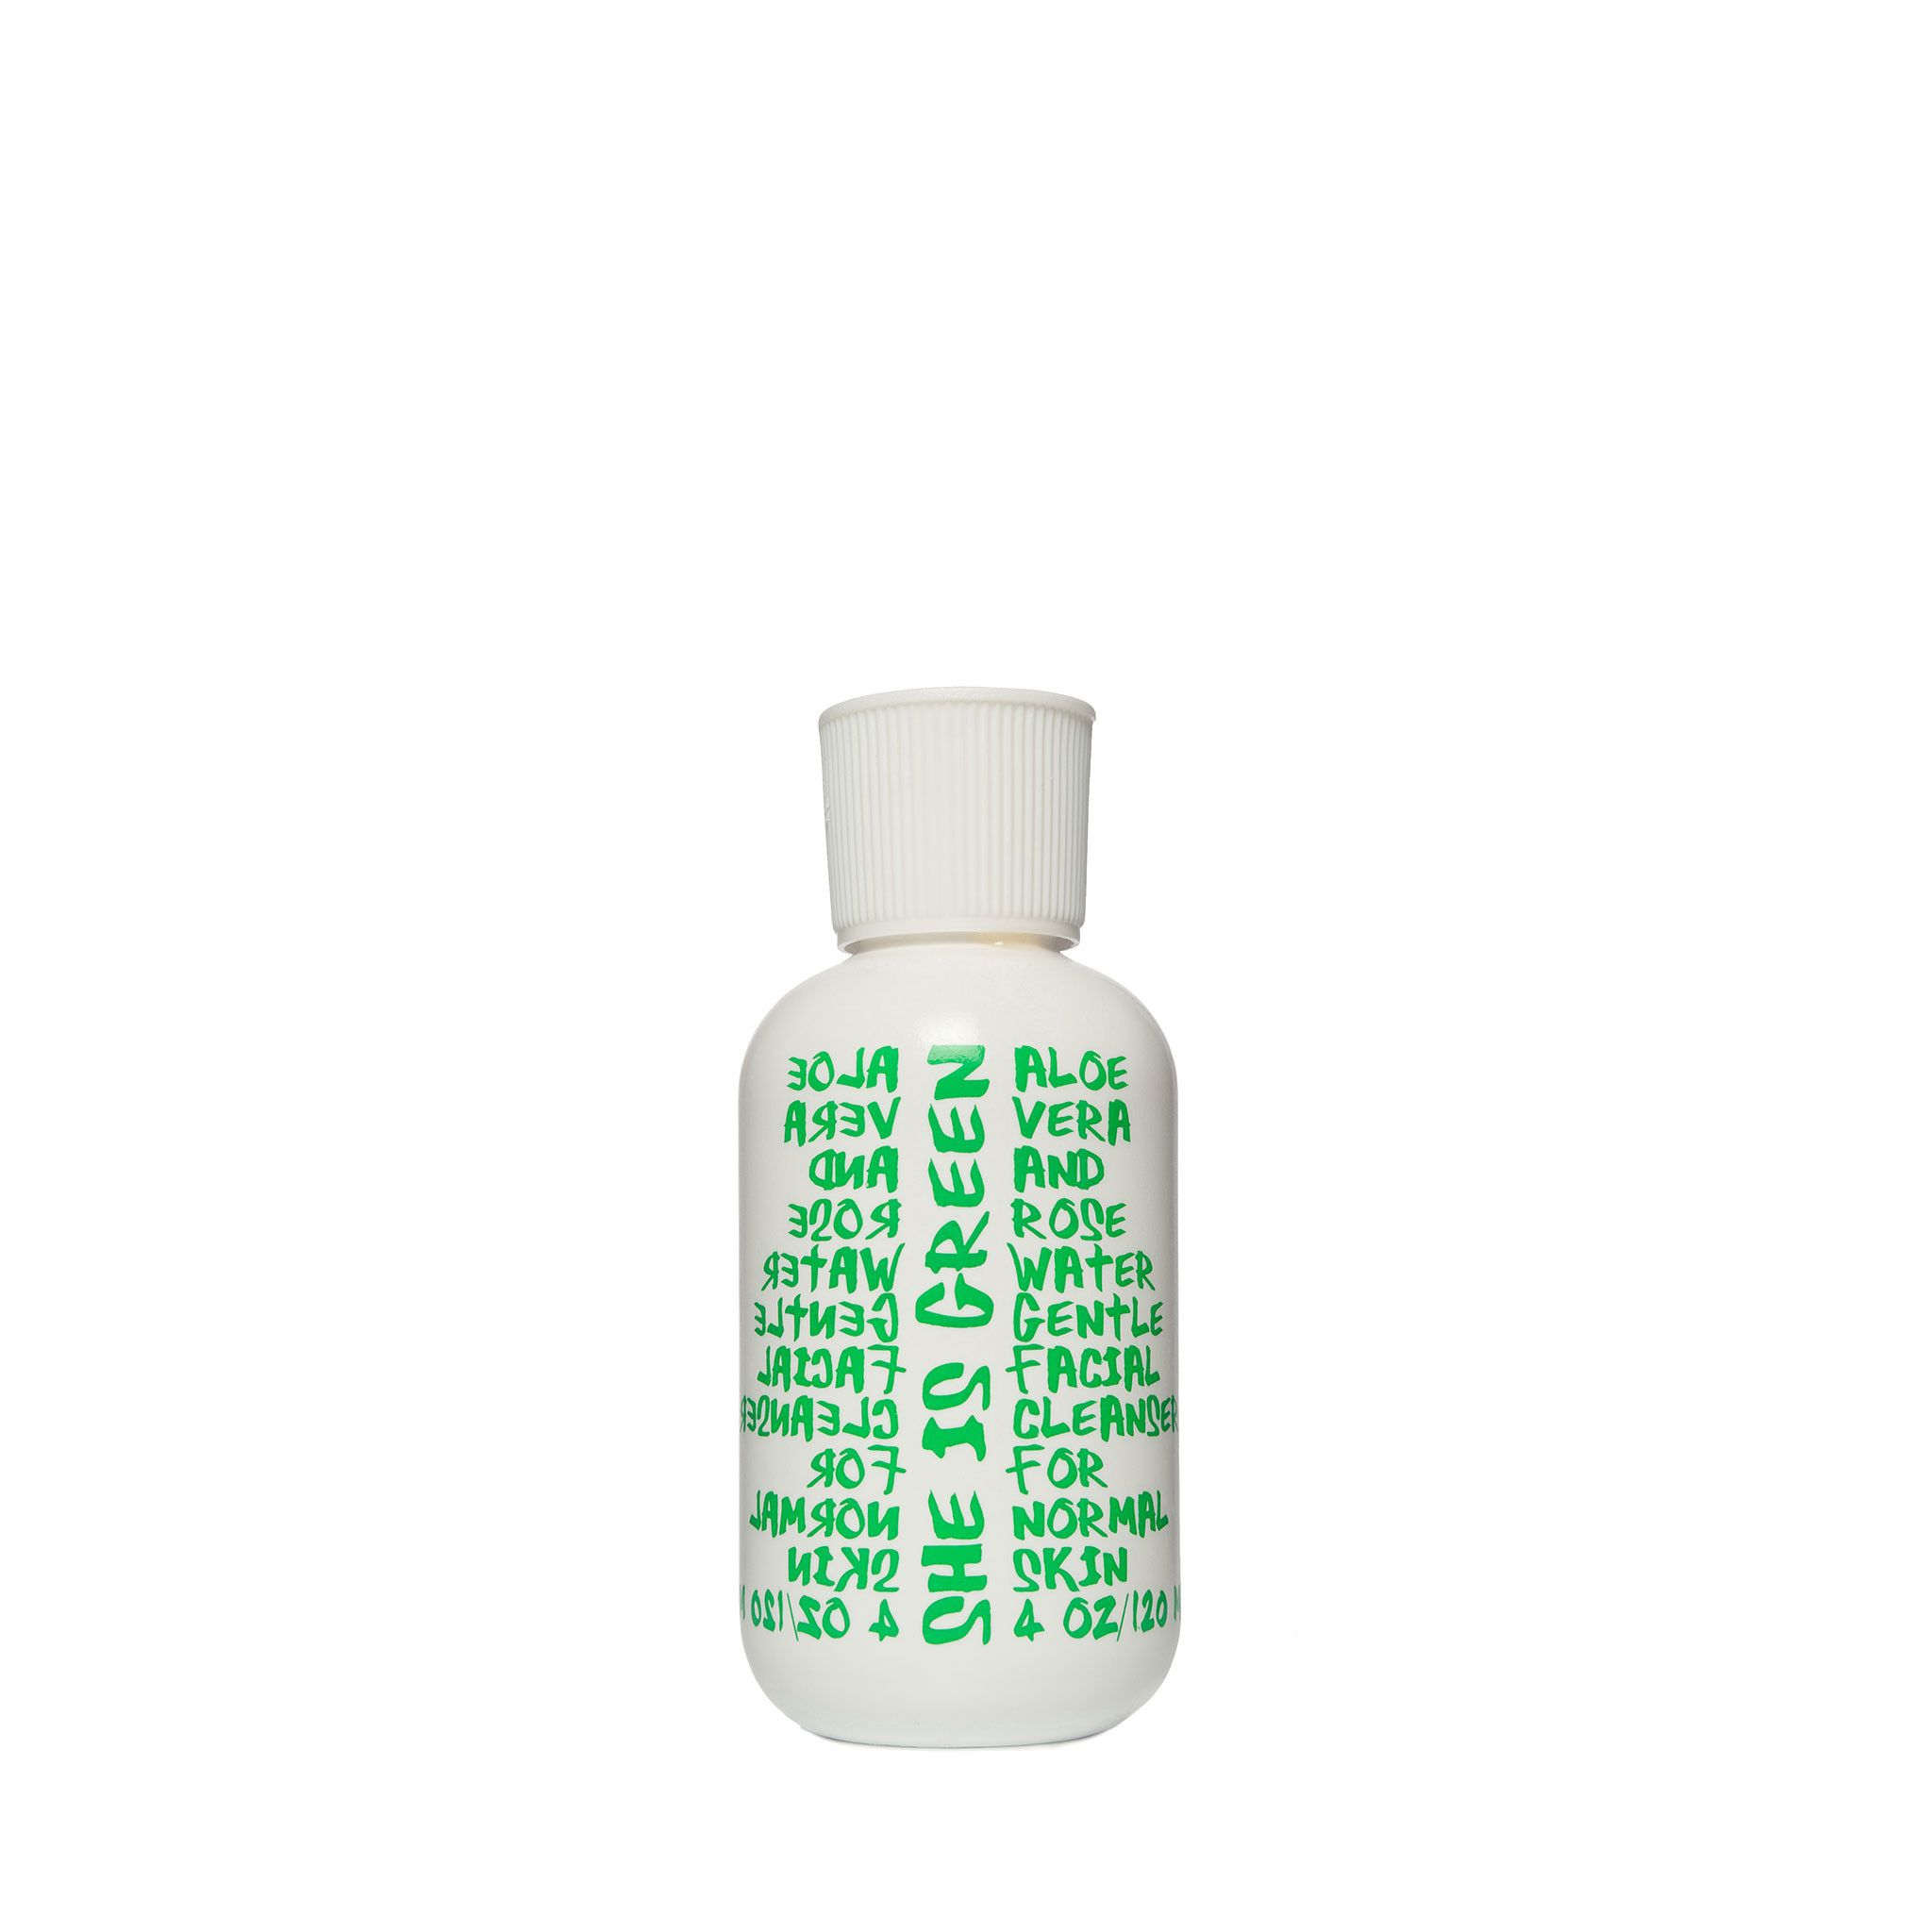 She is Green - Gentle Face Cleanser